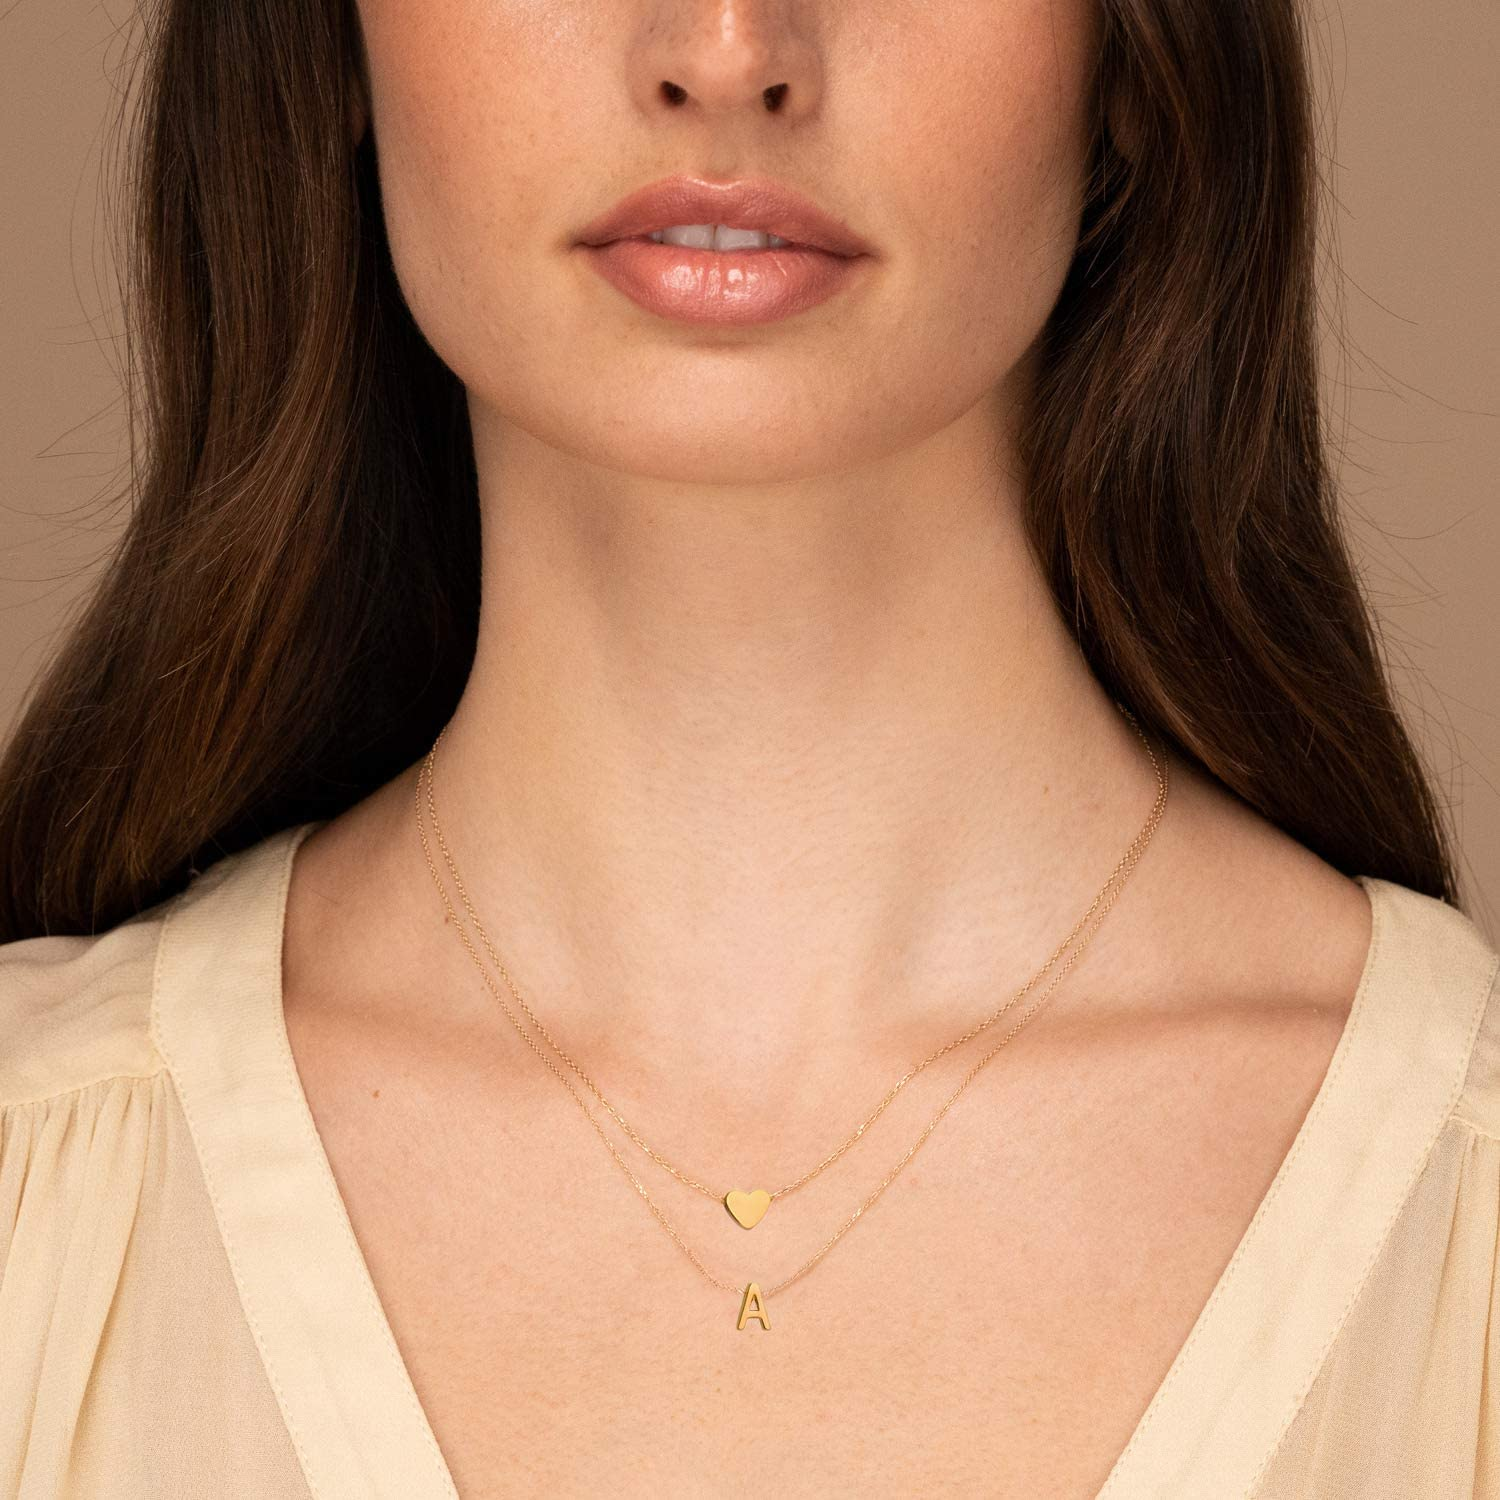 MOMOL 18K Gold Plated Stainless Steel Layered Heart Initial Necklace Personalized Tiny Letter Choker Necklace Monogram Name Necklace for Women Girls